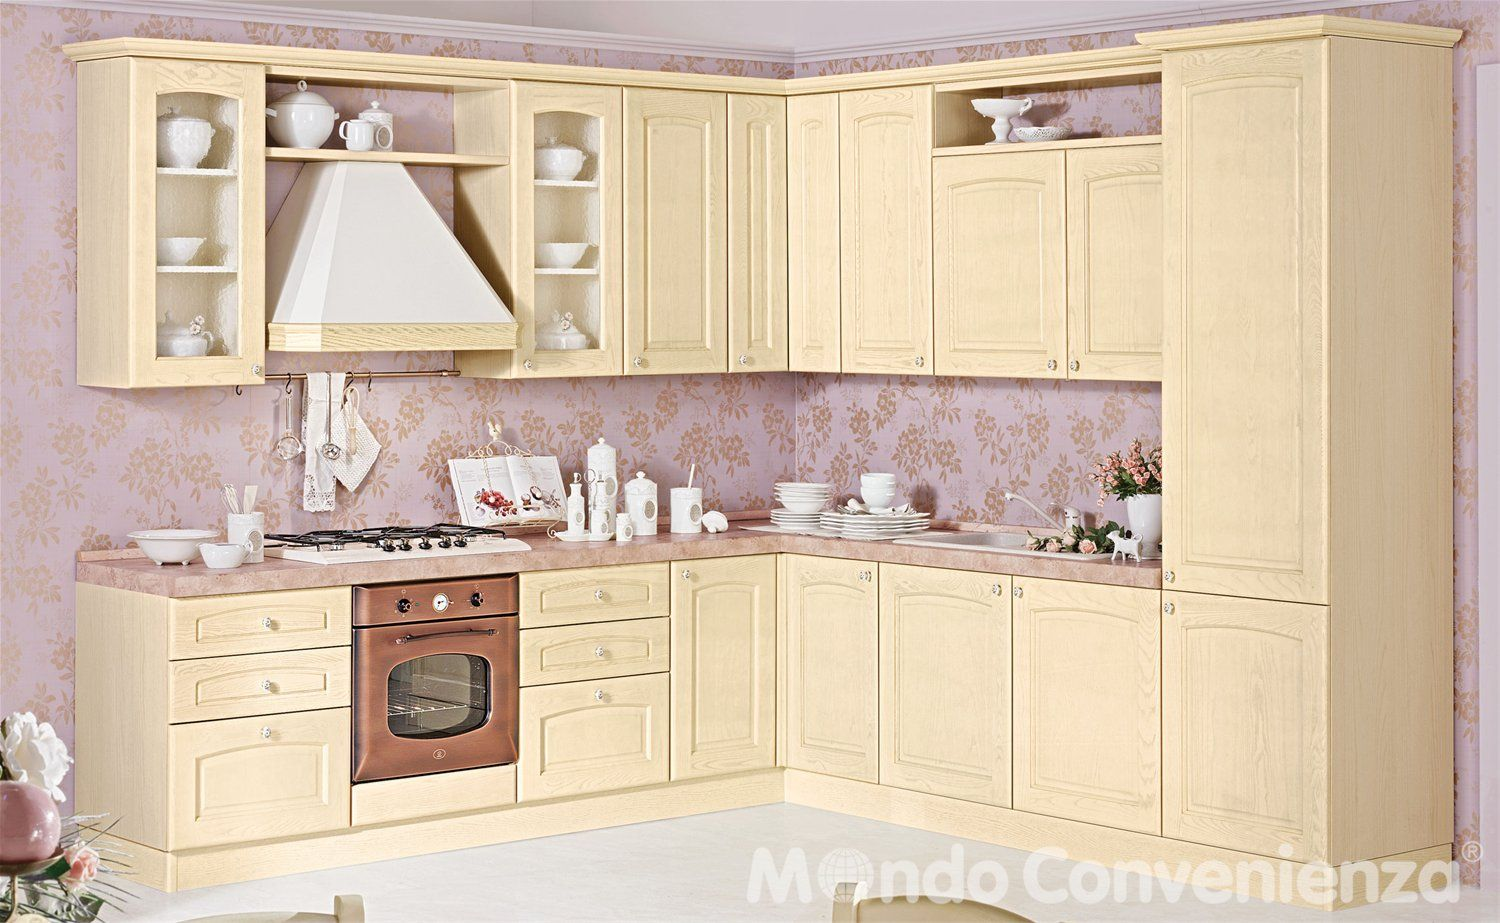 Beautiful cucina rita mondo convenienza ideas lepicentre for Cucina like mondo convenienza